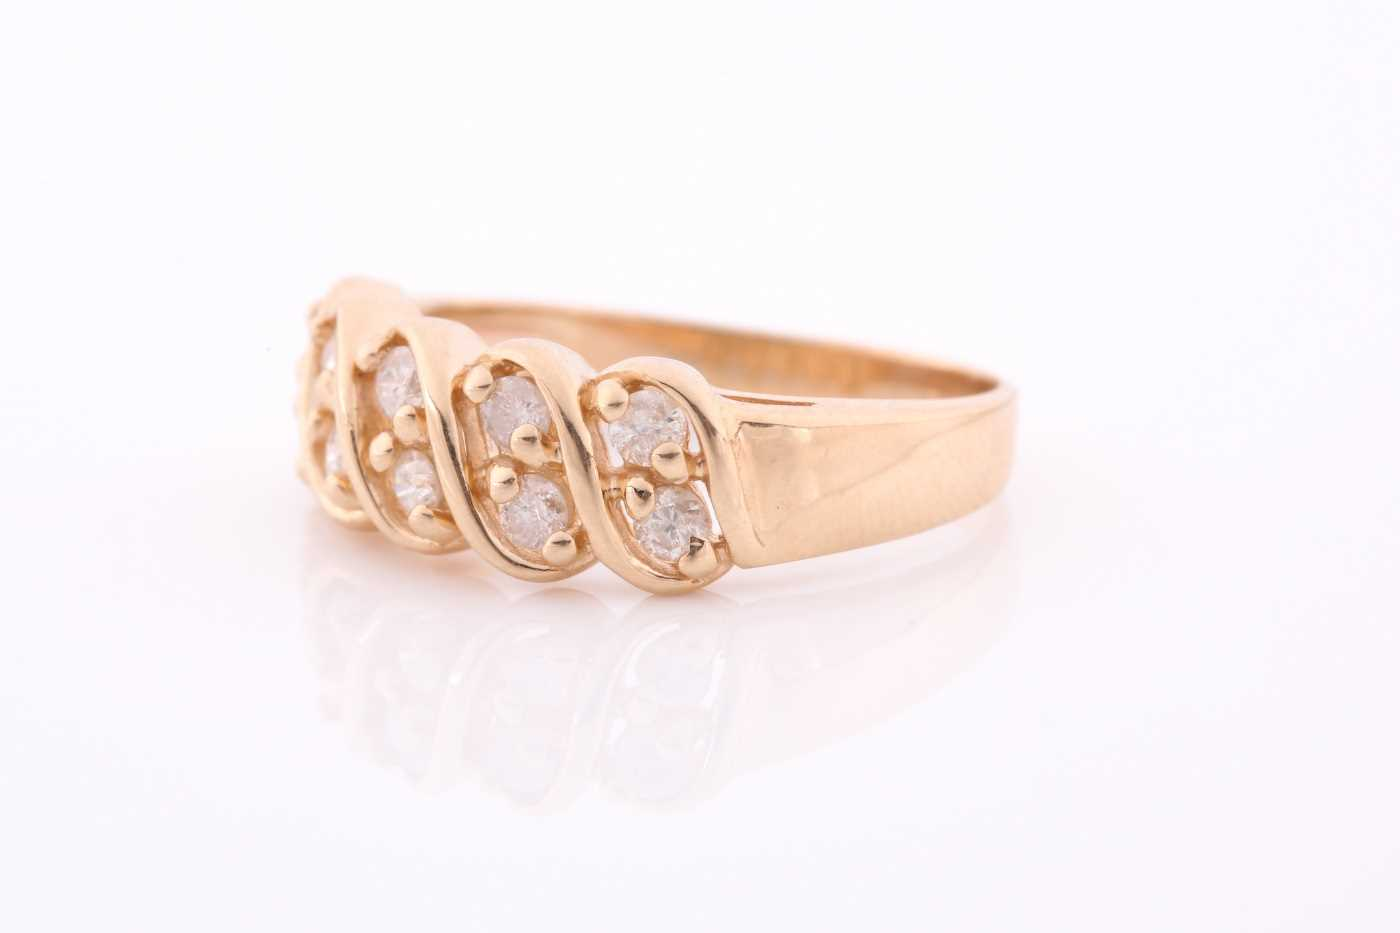 A yellow metal and diamond ring set with two rows of round-cut diamonds of approximately 0.50 carats - Image 3 of 4